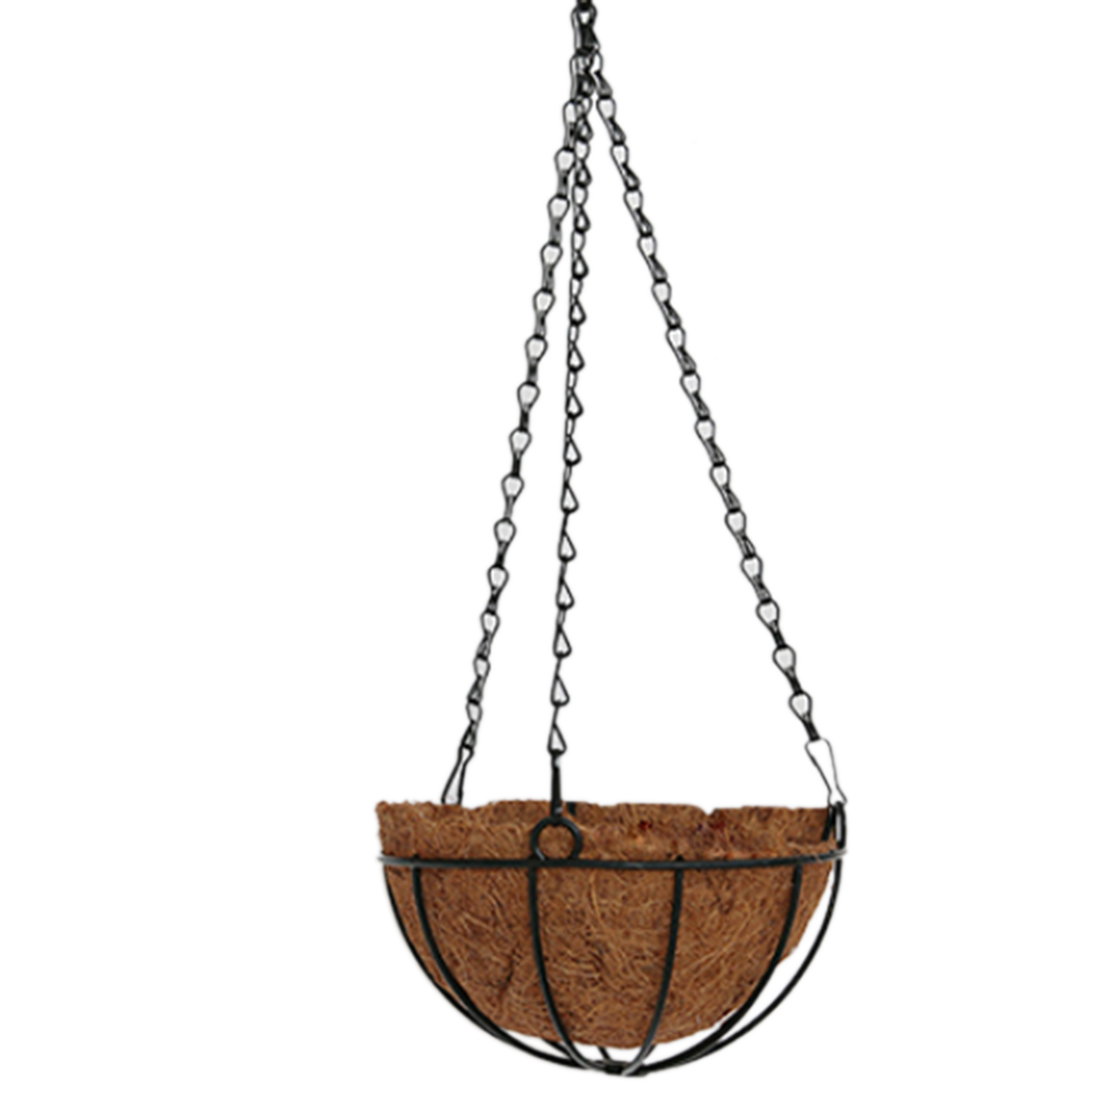 Us 8 81 32 Off 25cm 30cm Hanging Basket Decorations Iron Wire Coconut Fiber Hanging Planter Flower Basket With Chain Wall Hanging Home Decor In Wind